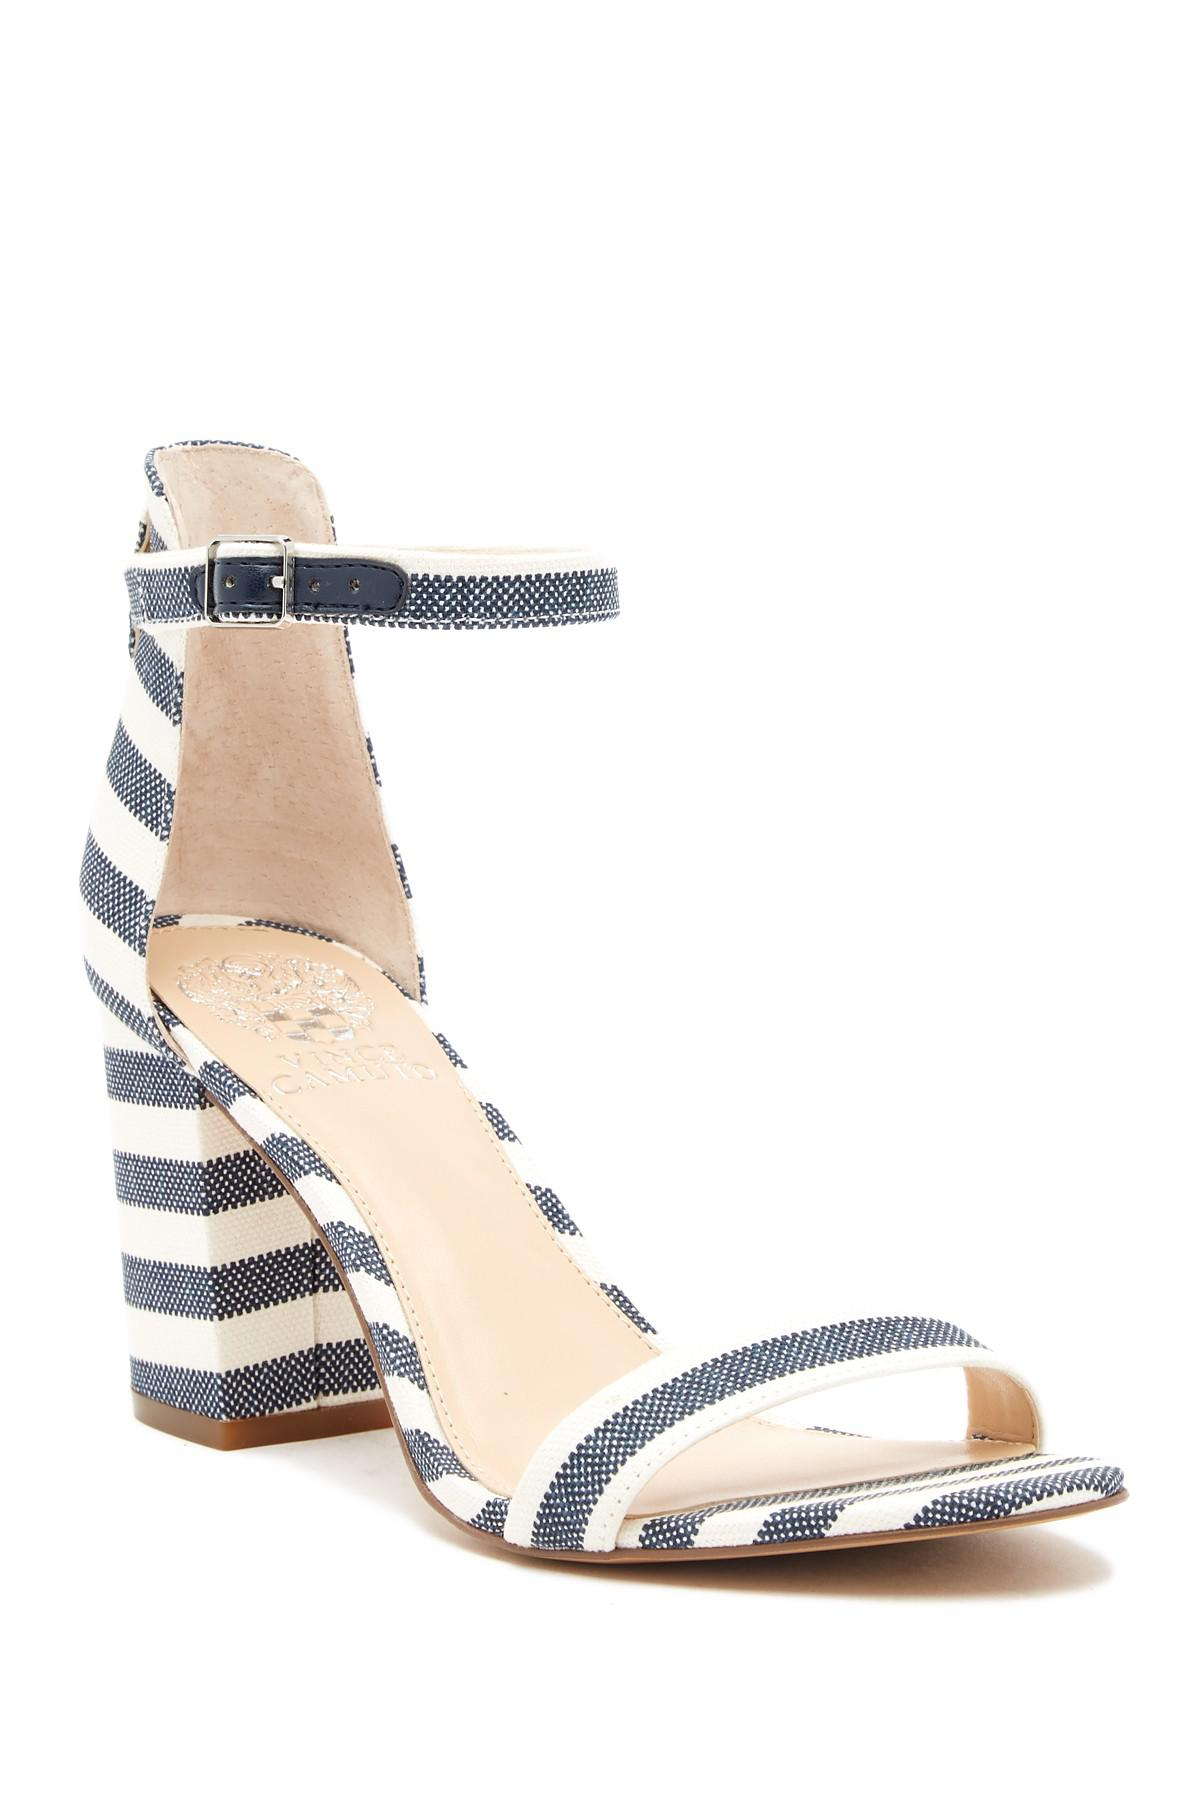 e335cc87819 Vince Camuto Beah Block Heel Ankle Strap Sandal in Blue - Lyst